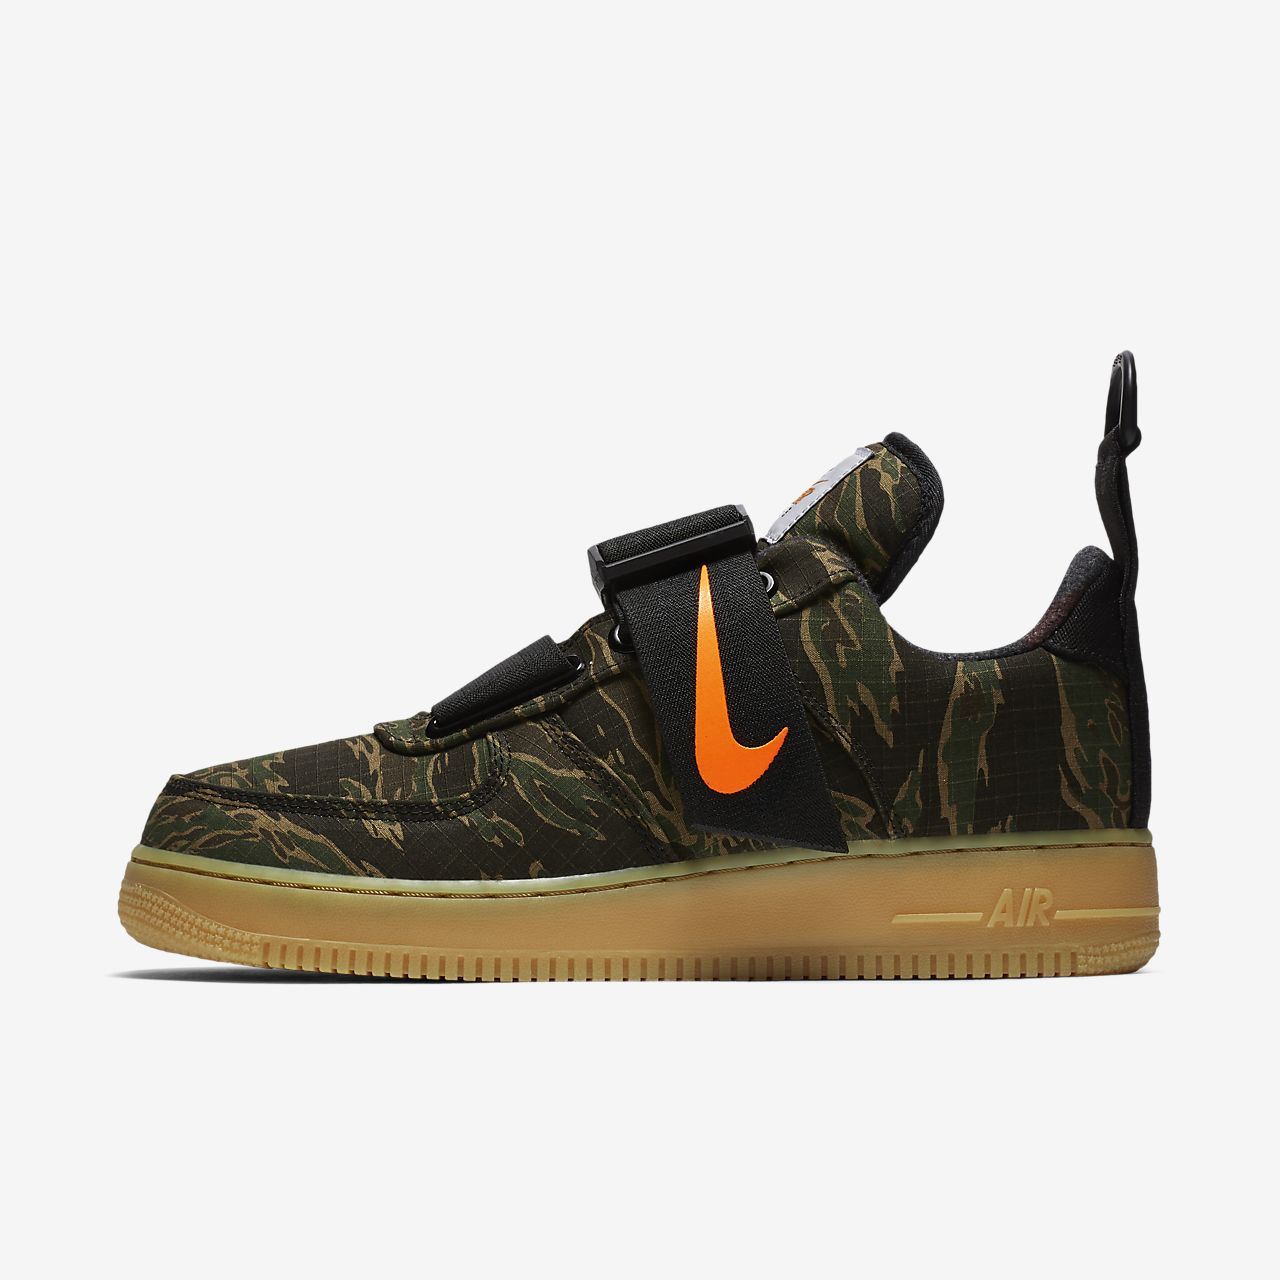 Nike Air Force 1 Utility Low Premium WIP 男鞋